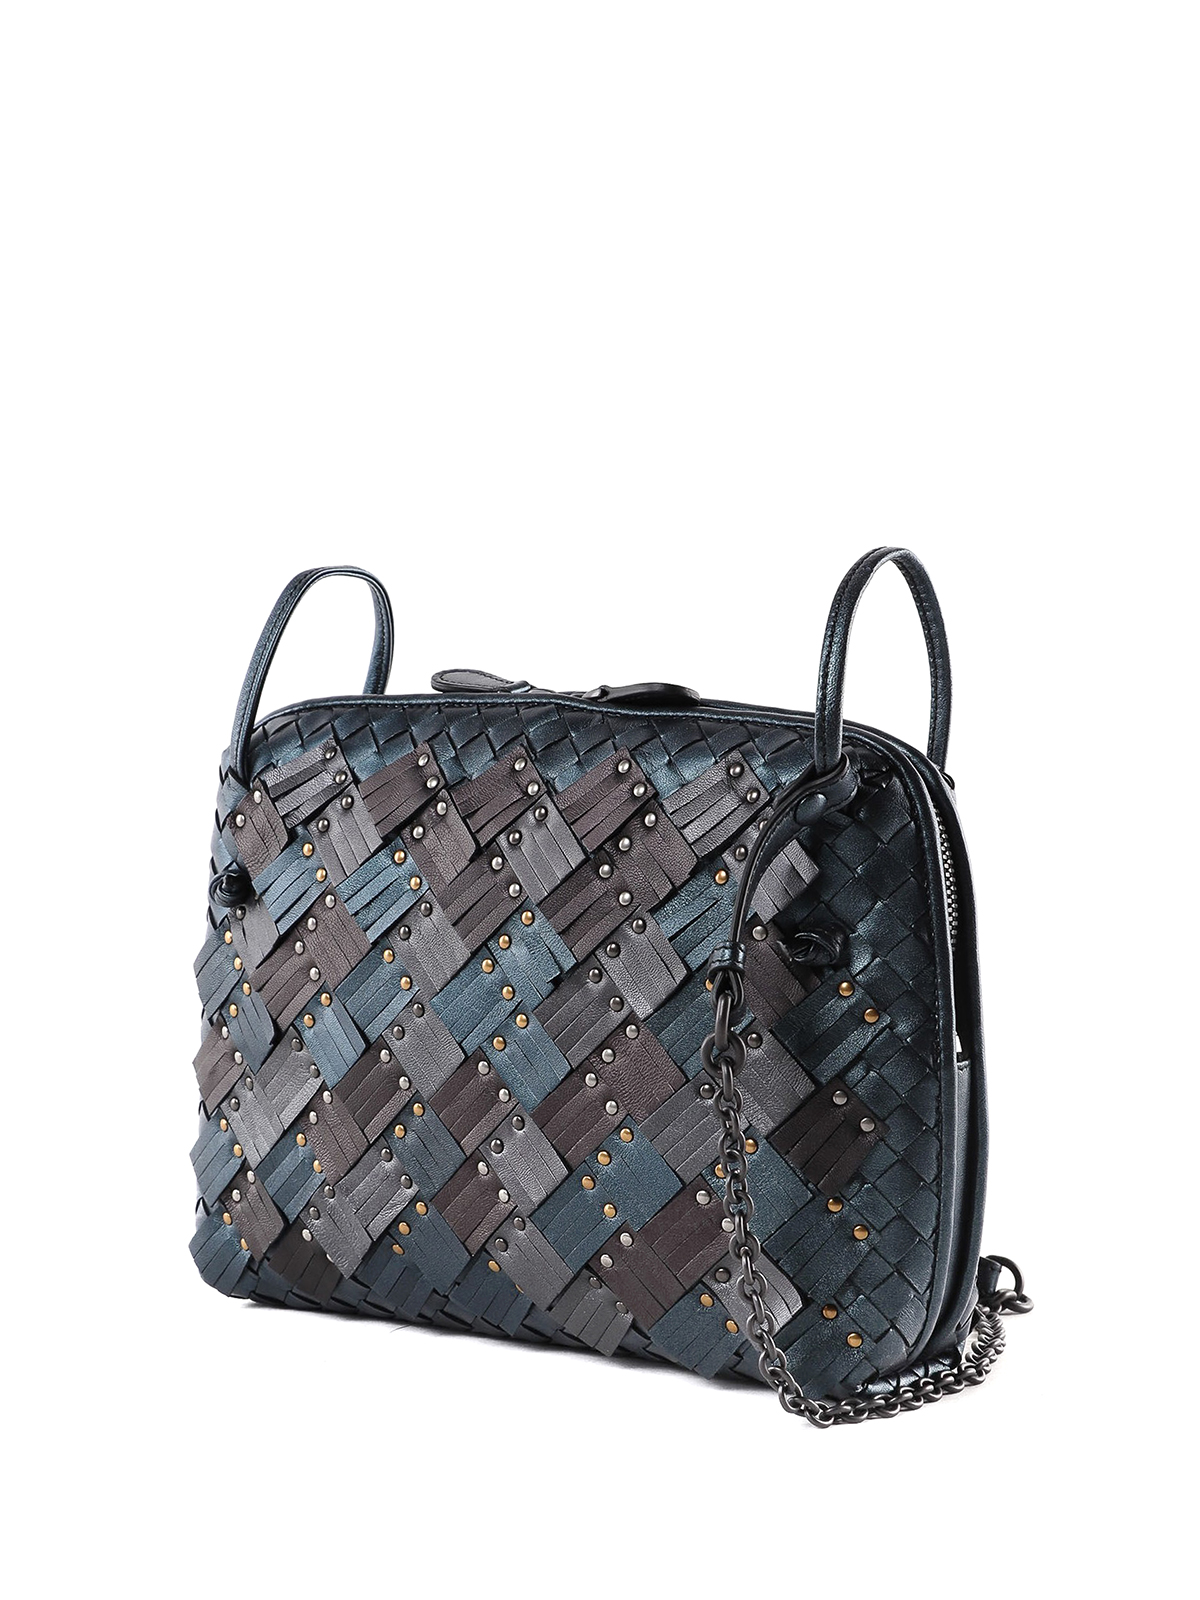 8e85833d4da32 BOTTEGA VENETA  cross body bags online - Nodini Intrecciato Plume nappa bag